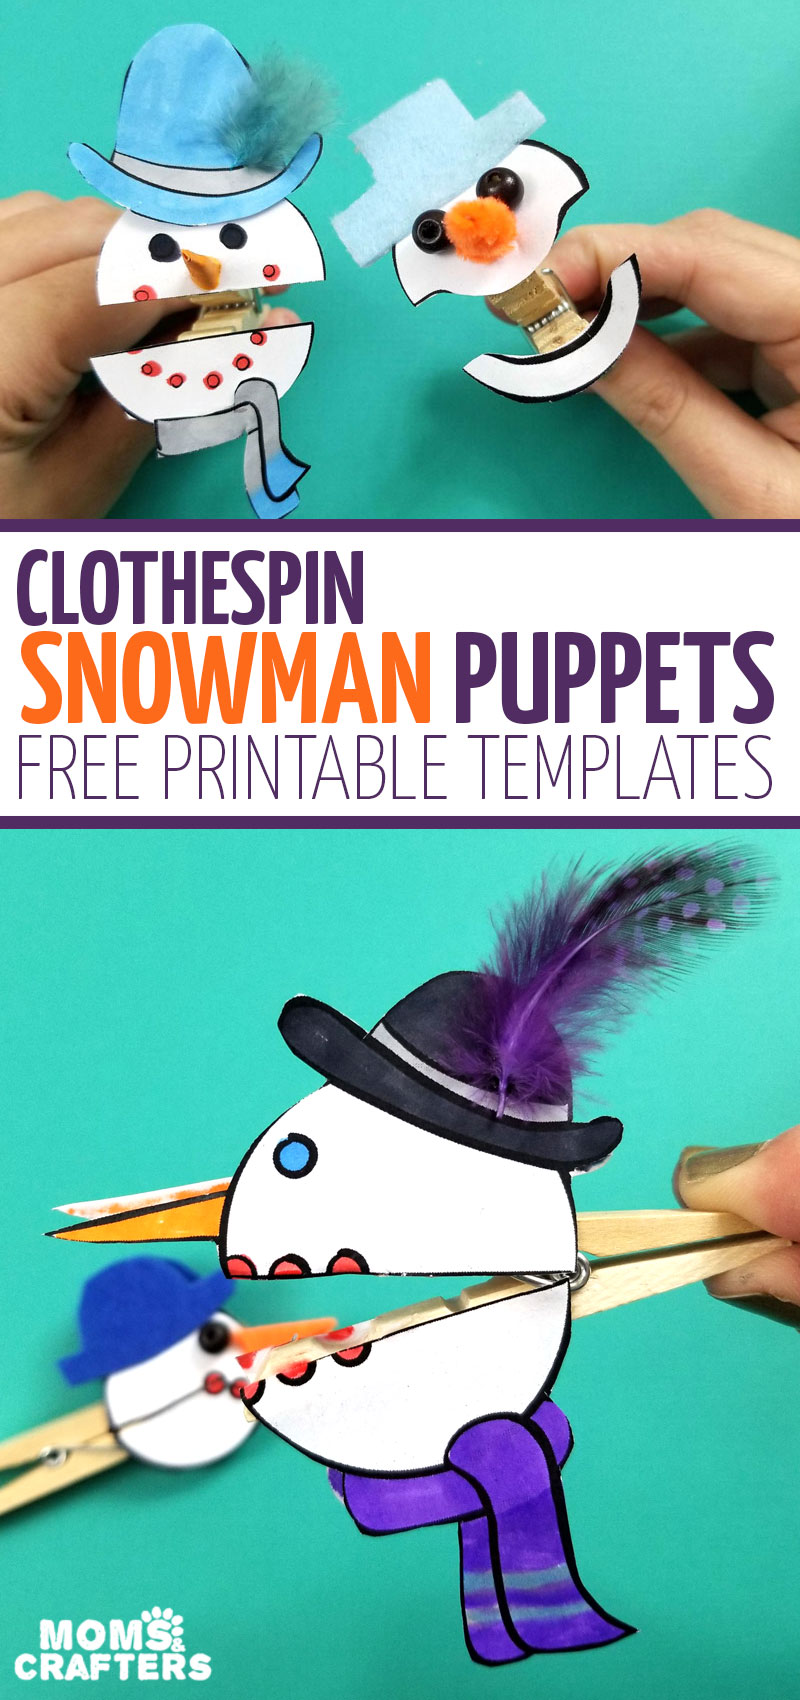 These easy clothespin puppets make a great winter craft for kids! Click for the free snowman puppets template and make this sweet fine motor snowman craft for preschoolers and kids. #finemotor #snowman #wintercrafts